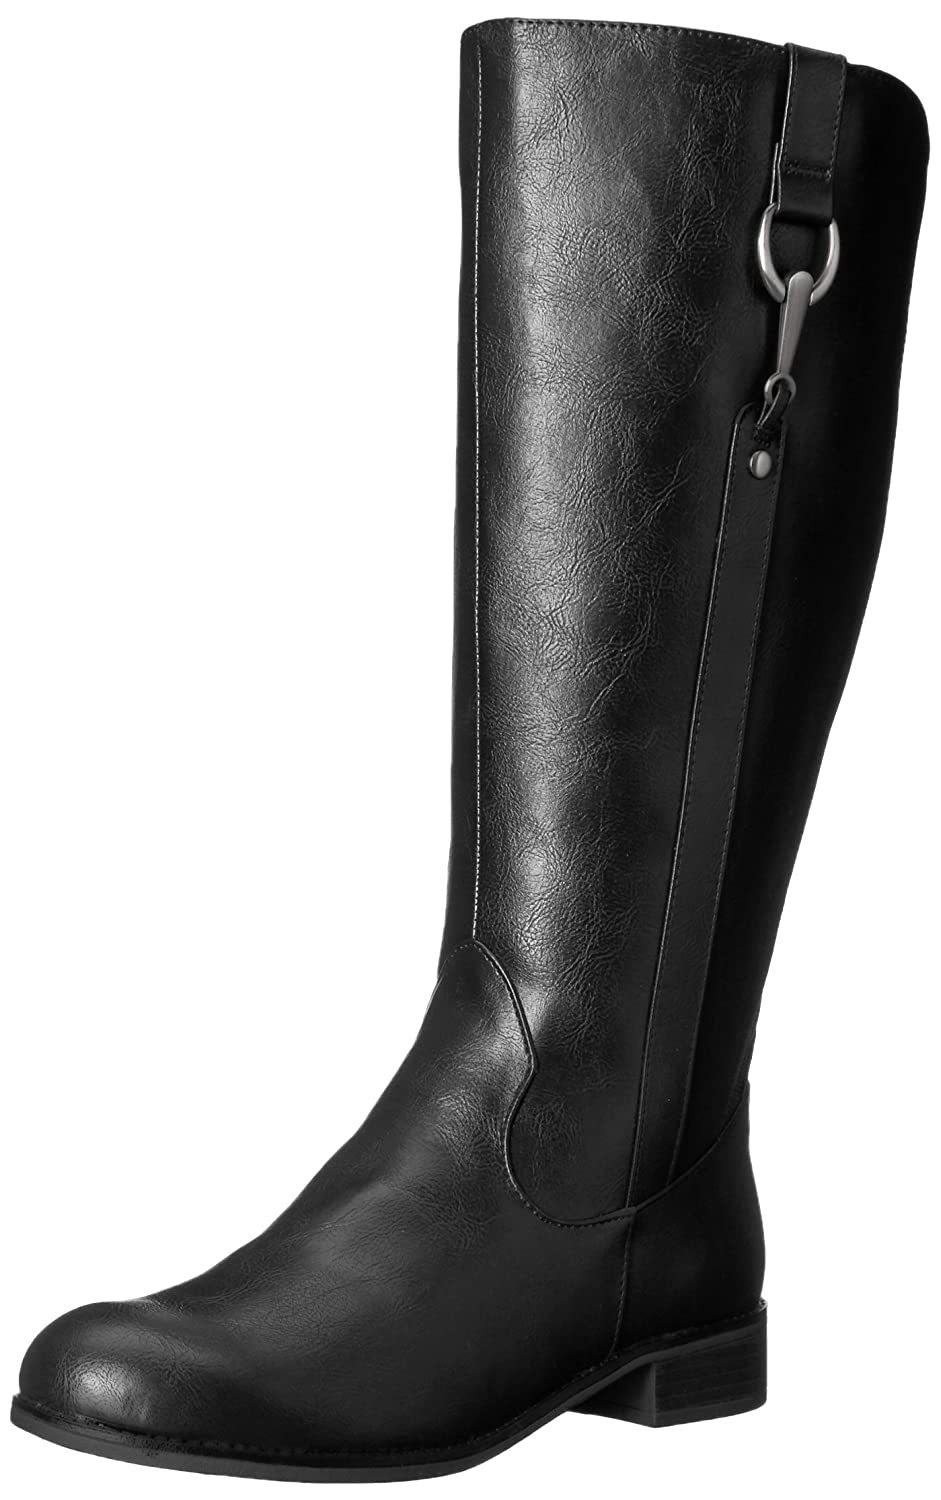 LifeStride Women's Sikora-Wc Riding Boot B07325DXQL 9.5 W US|Black